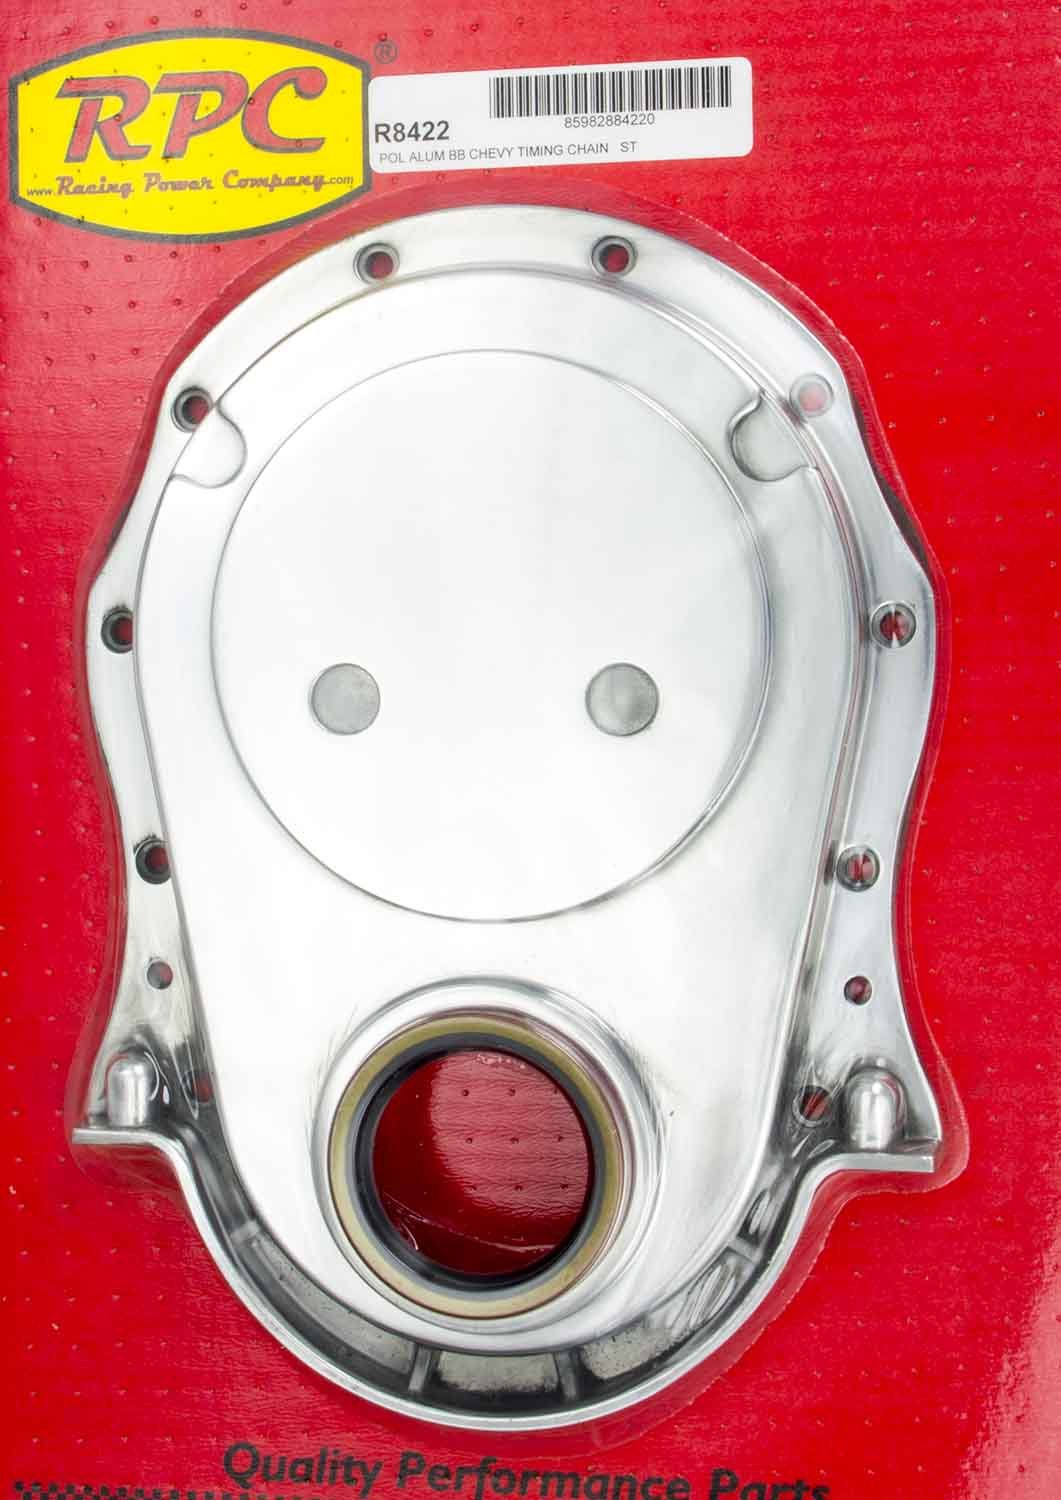 Racing Power Company R8422 Polished Aluminum Timing Chain Cover for Big Block Chevy